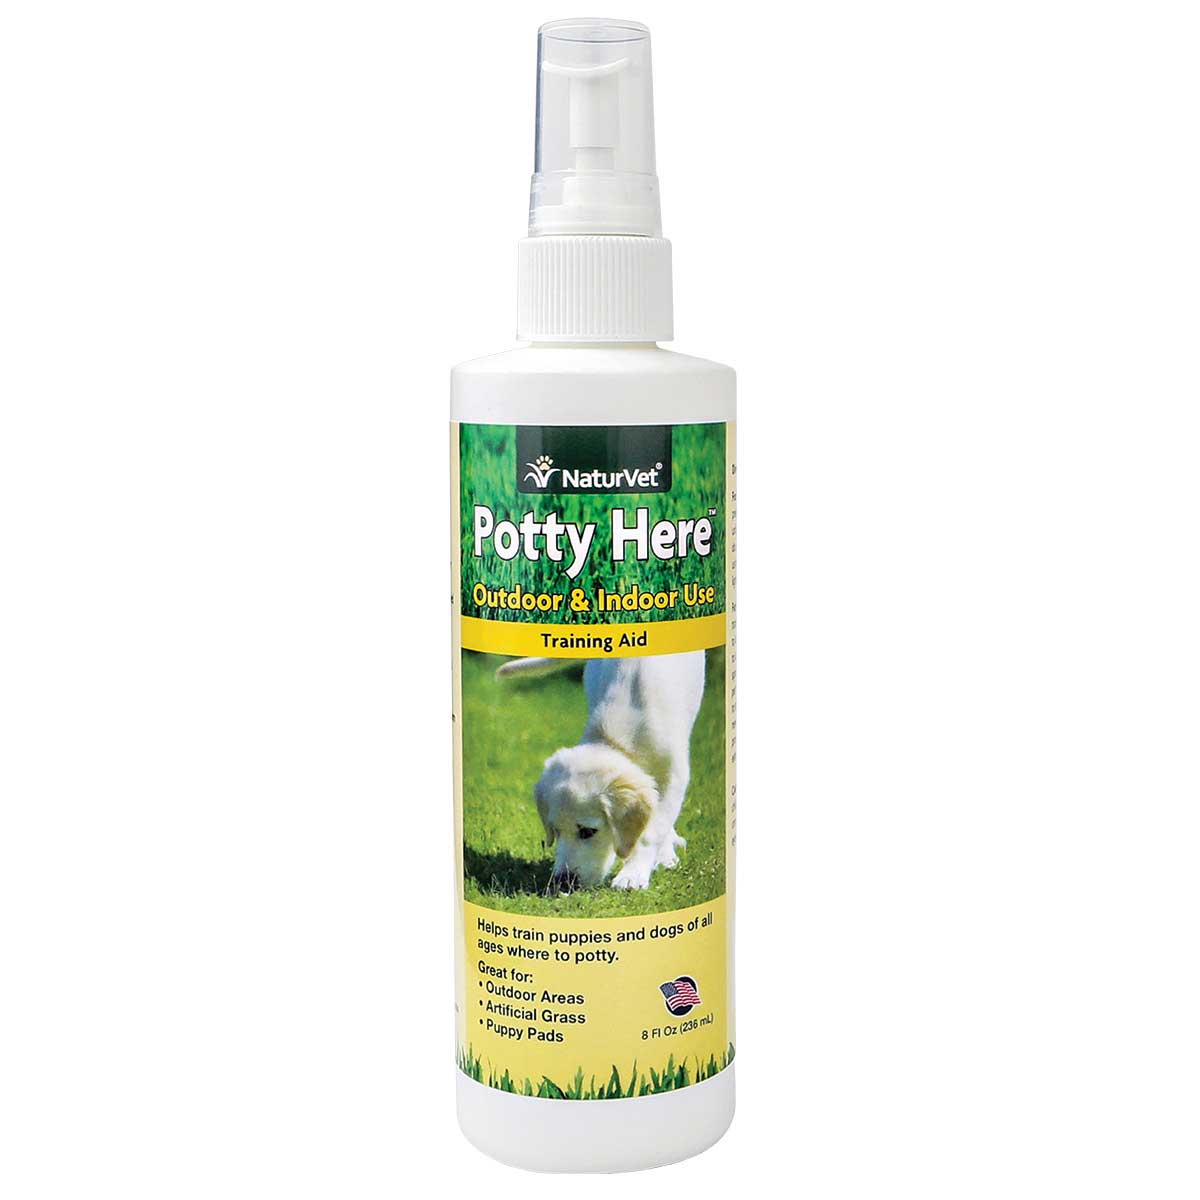 NaturVet Potty Here Training Aid Spray for Dogs - Outdoor and Indoor use 8 oz